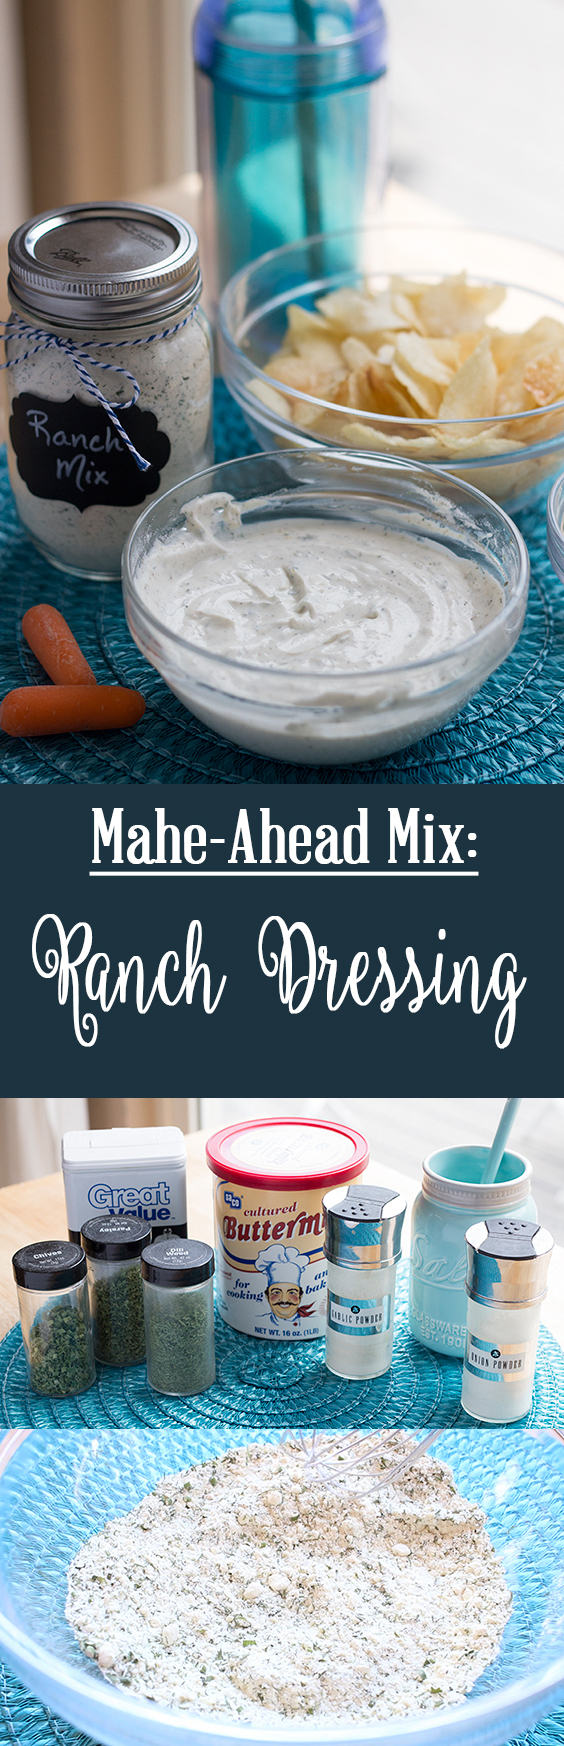 Make your own ranch dressing mix! No fillers, no chemicals - just real food ingredients. Easy and cheap!